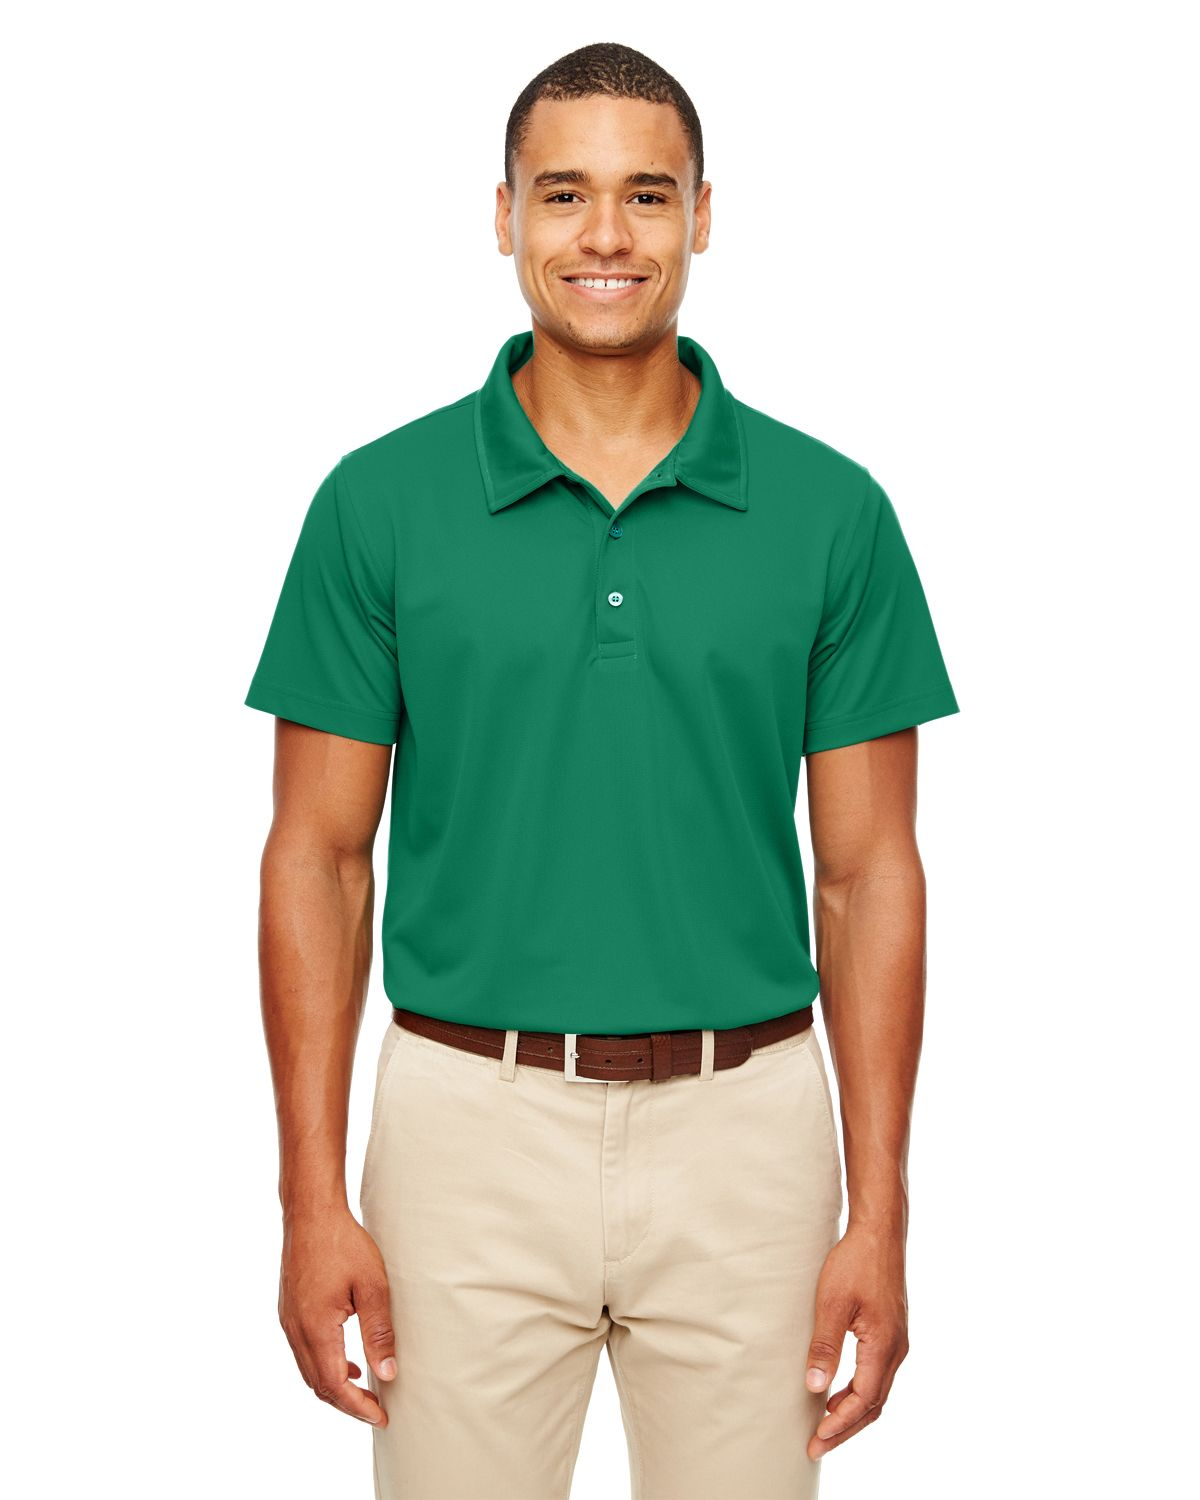 Team 365 Men's Command Snag Protection Polo. This polo is